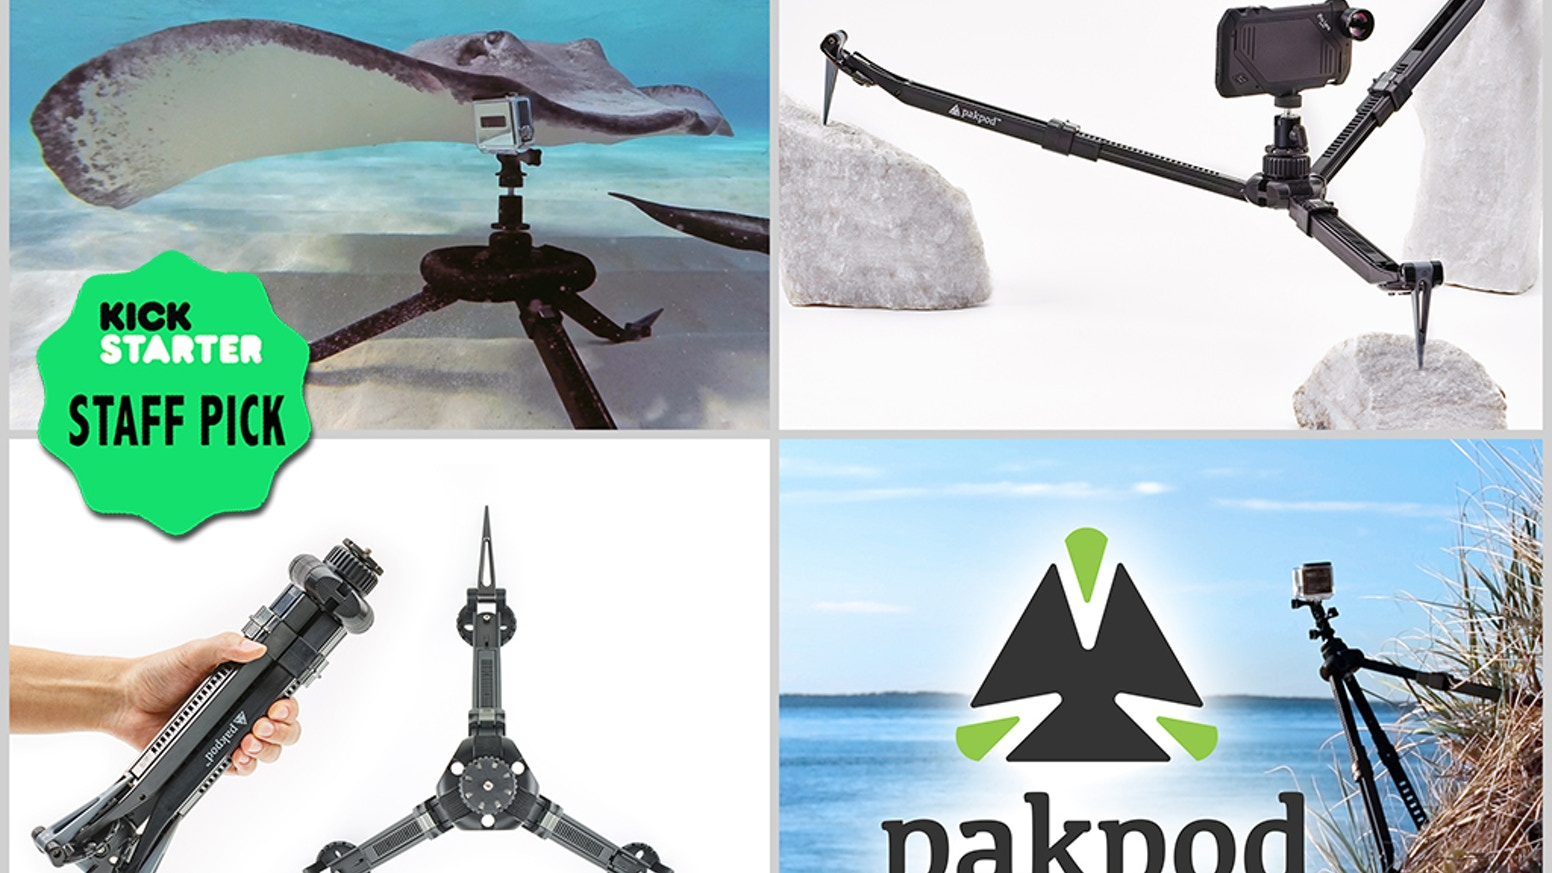 Pakpod: The Stake-able, Packable, Riggable, Waterproof, All-Terrain Tripod. Stake Out Your Next Adventure.